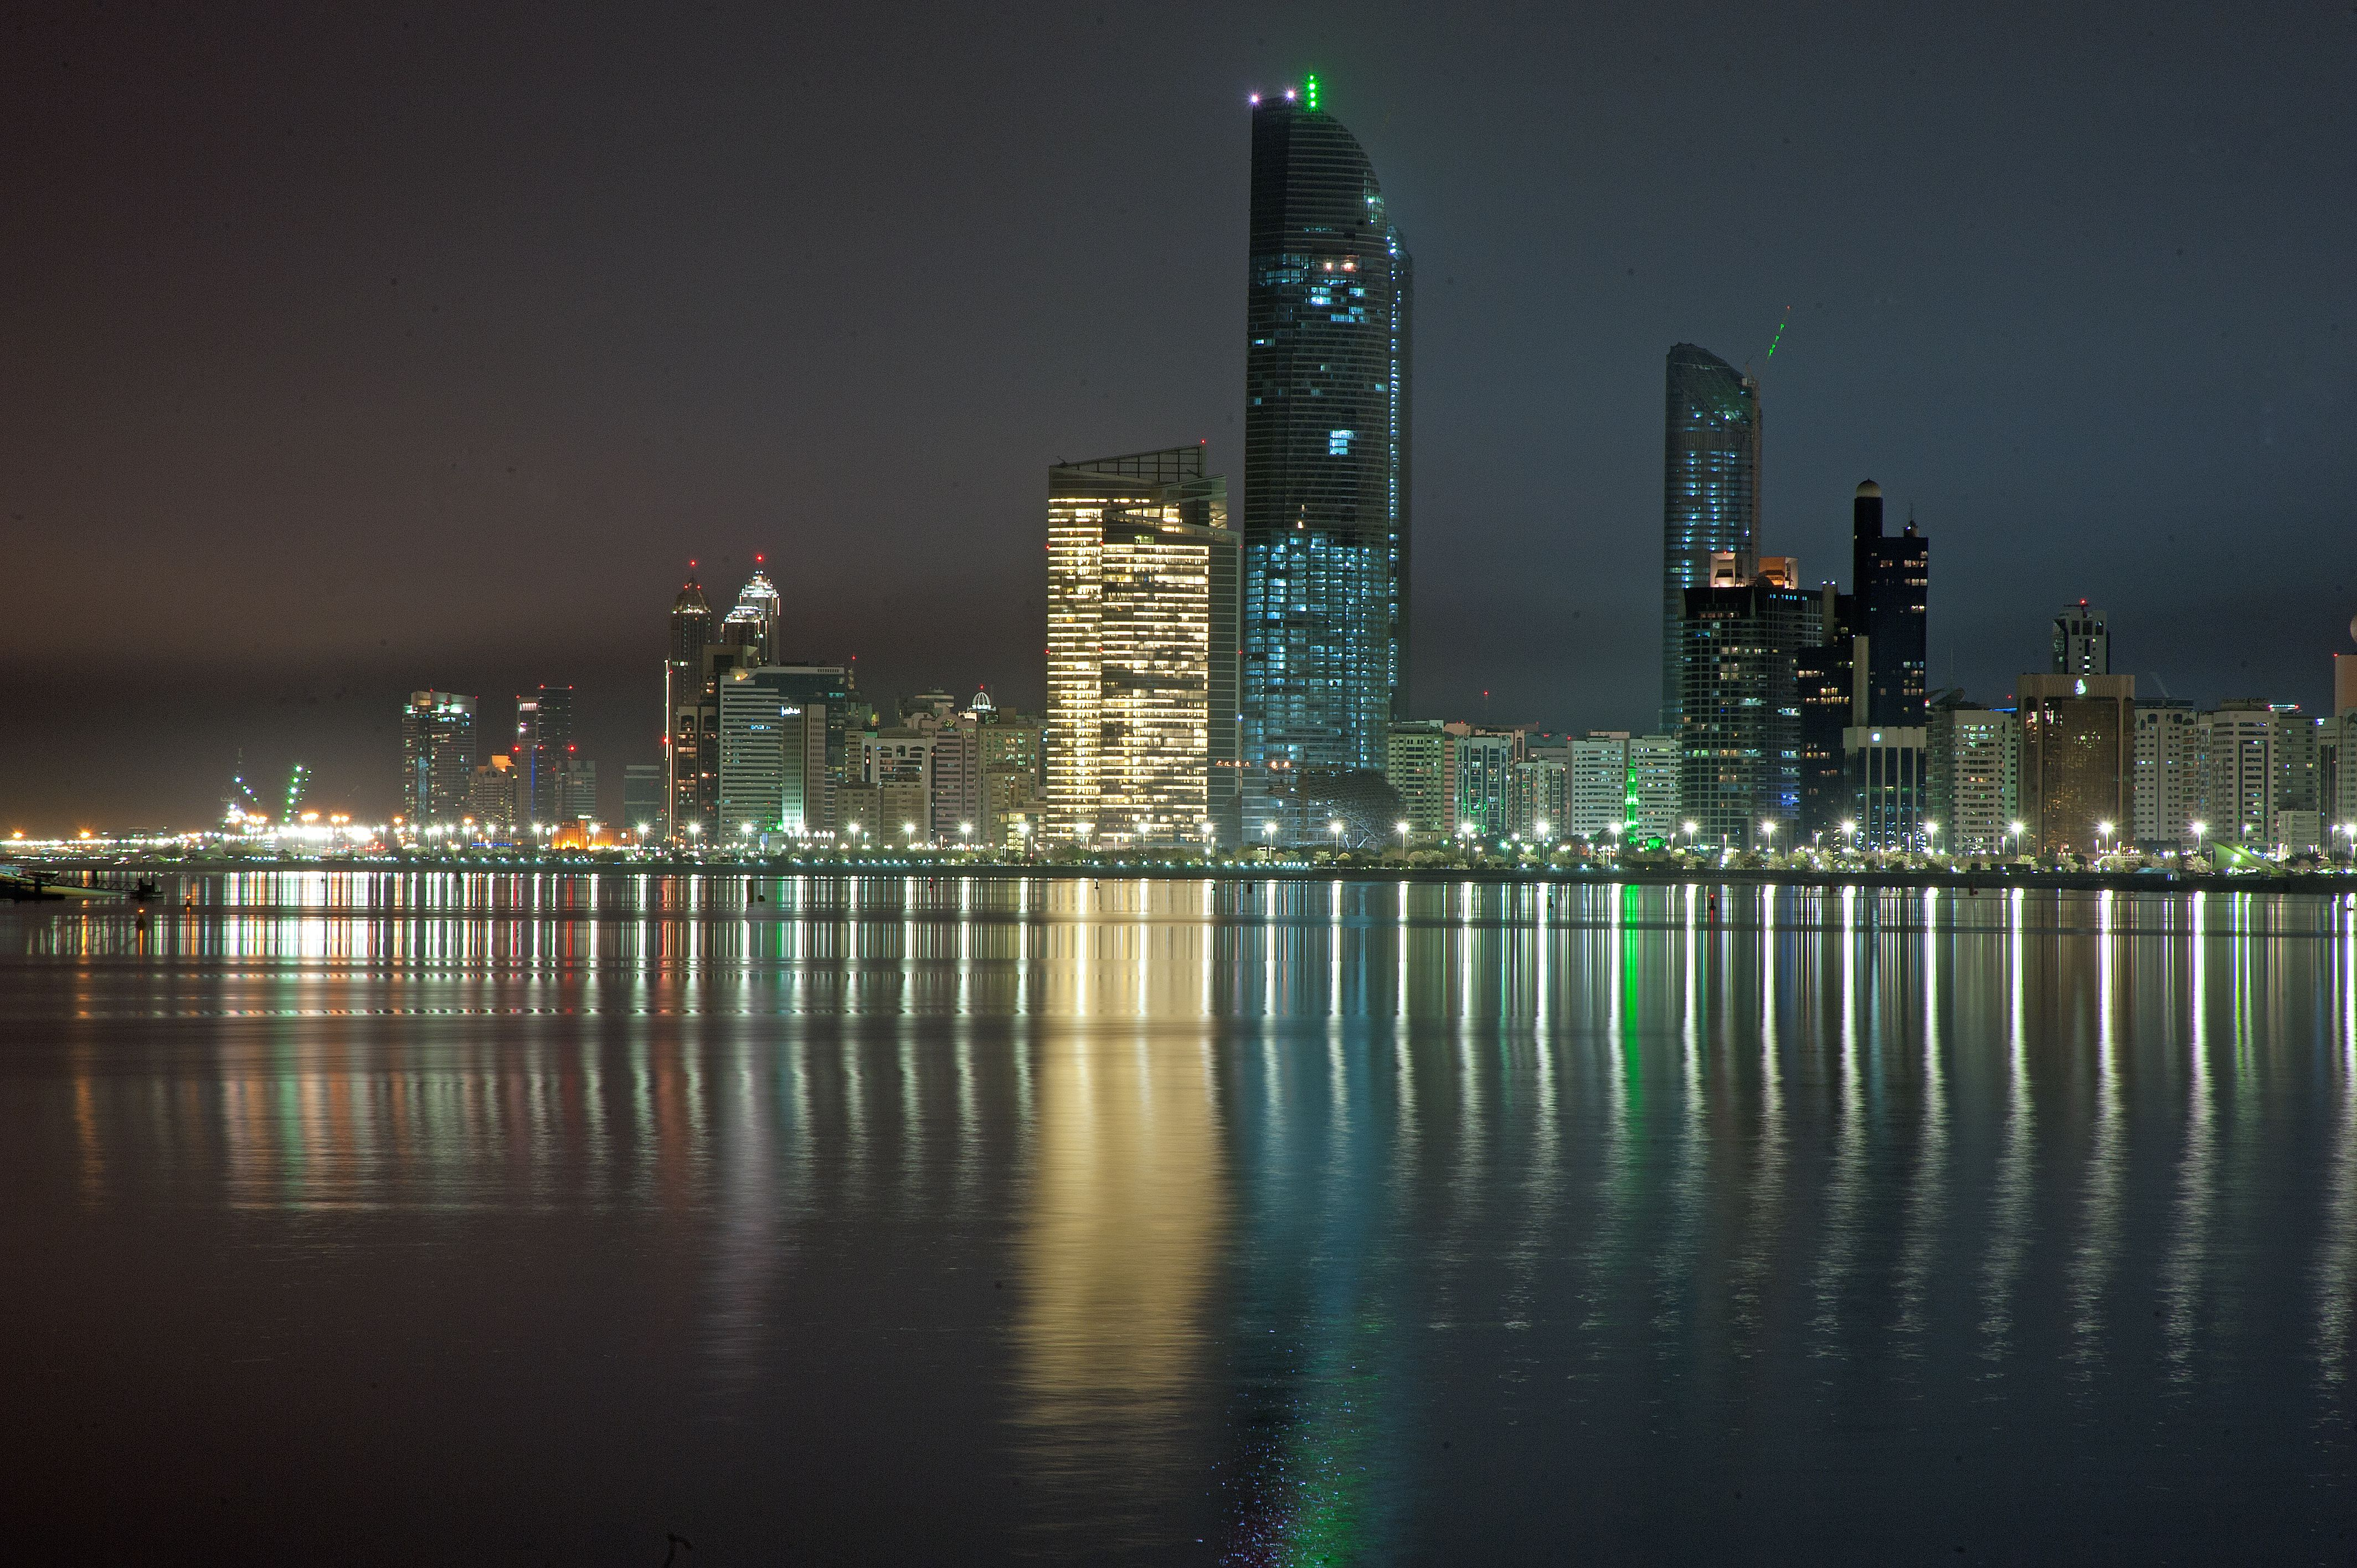 taken from the Heritage Village looking back to the corniche & the new Landmark Tower building.